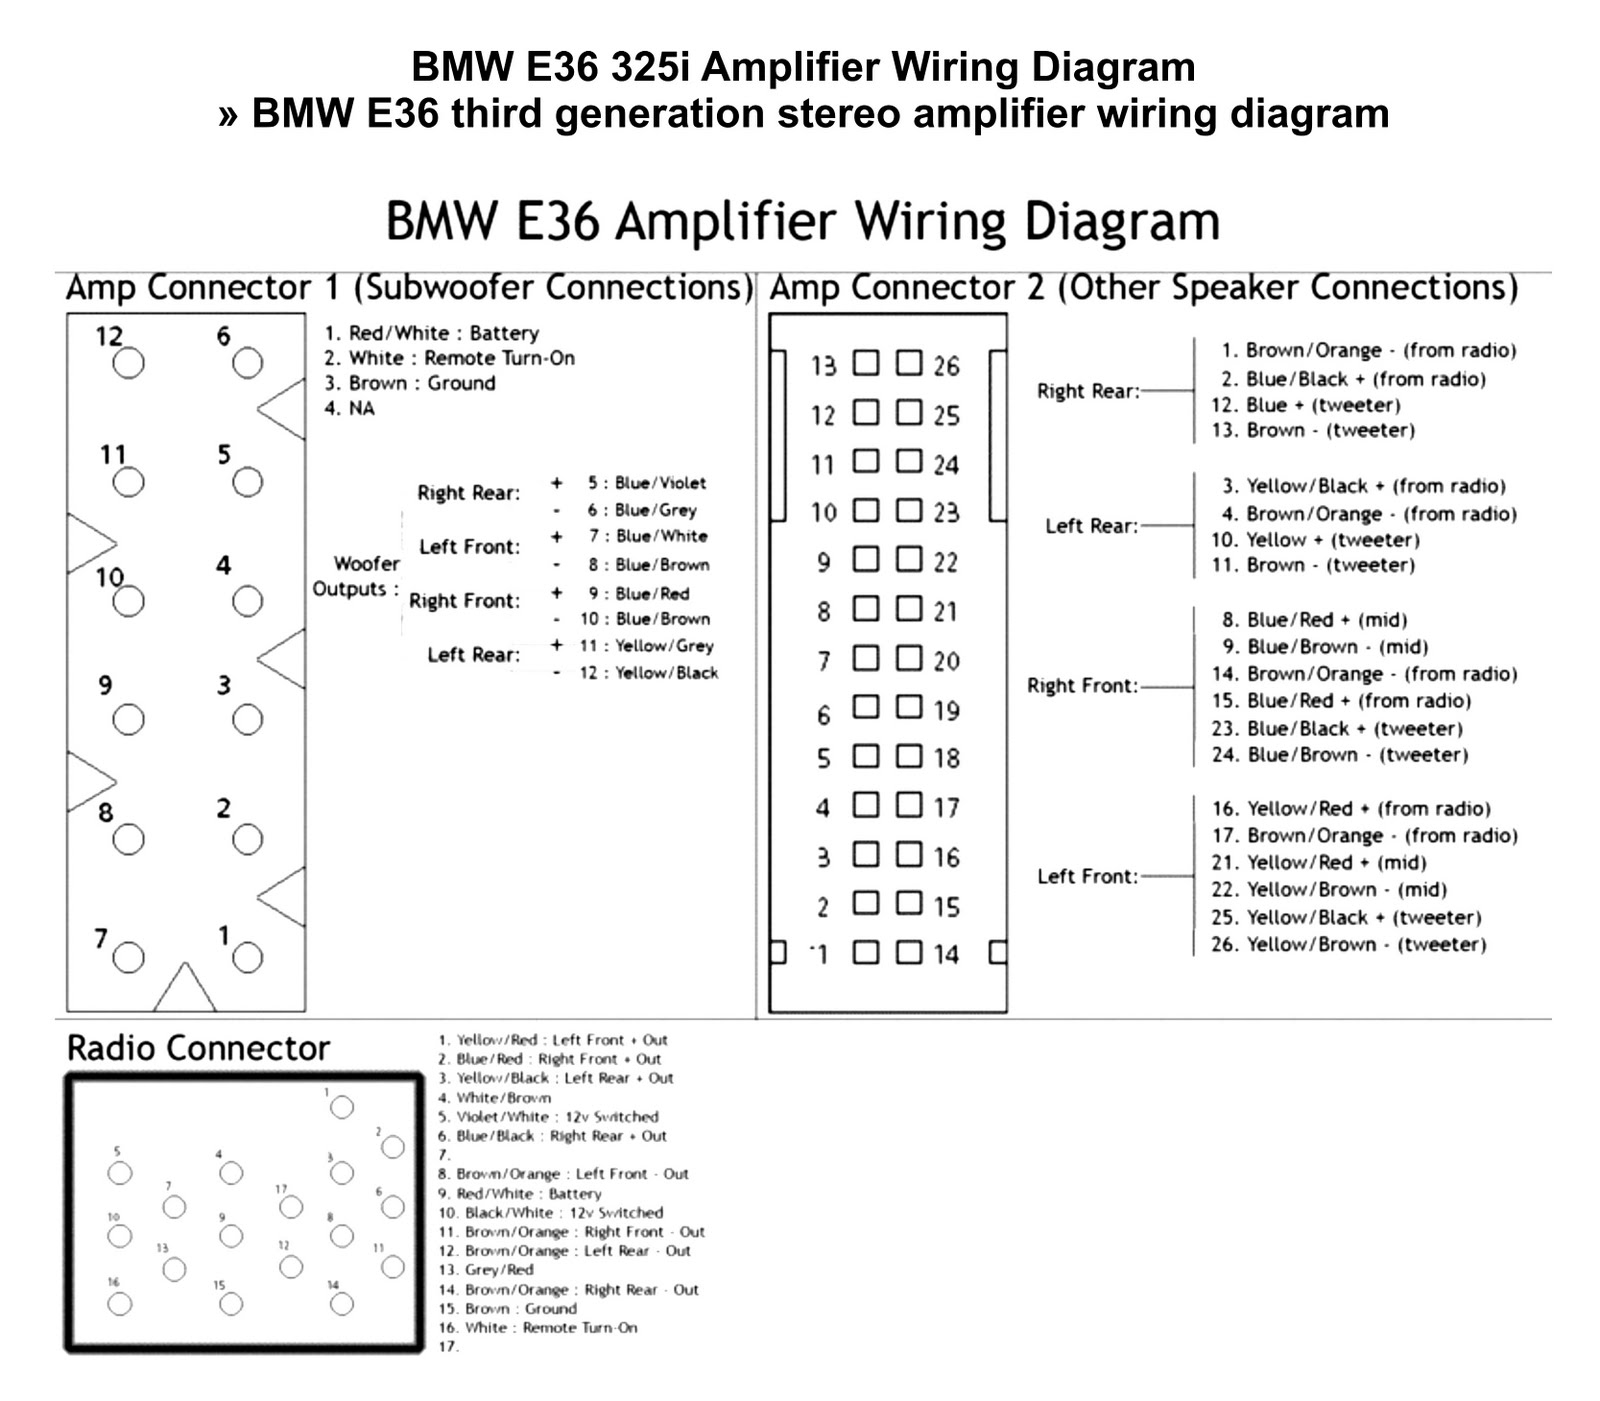 bmw e36 radio harness wires wiring diagram paper 1998 bmw m3 e36 radio wiring wiring diagram [ 1600 x 1401 Pixel ]